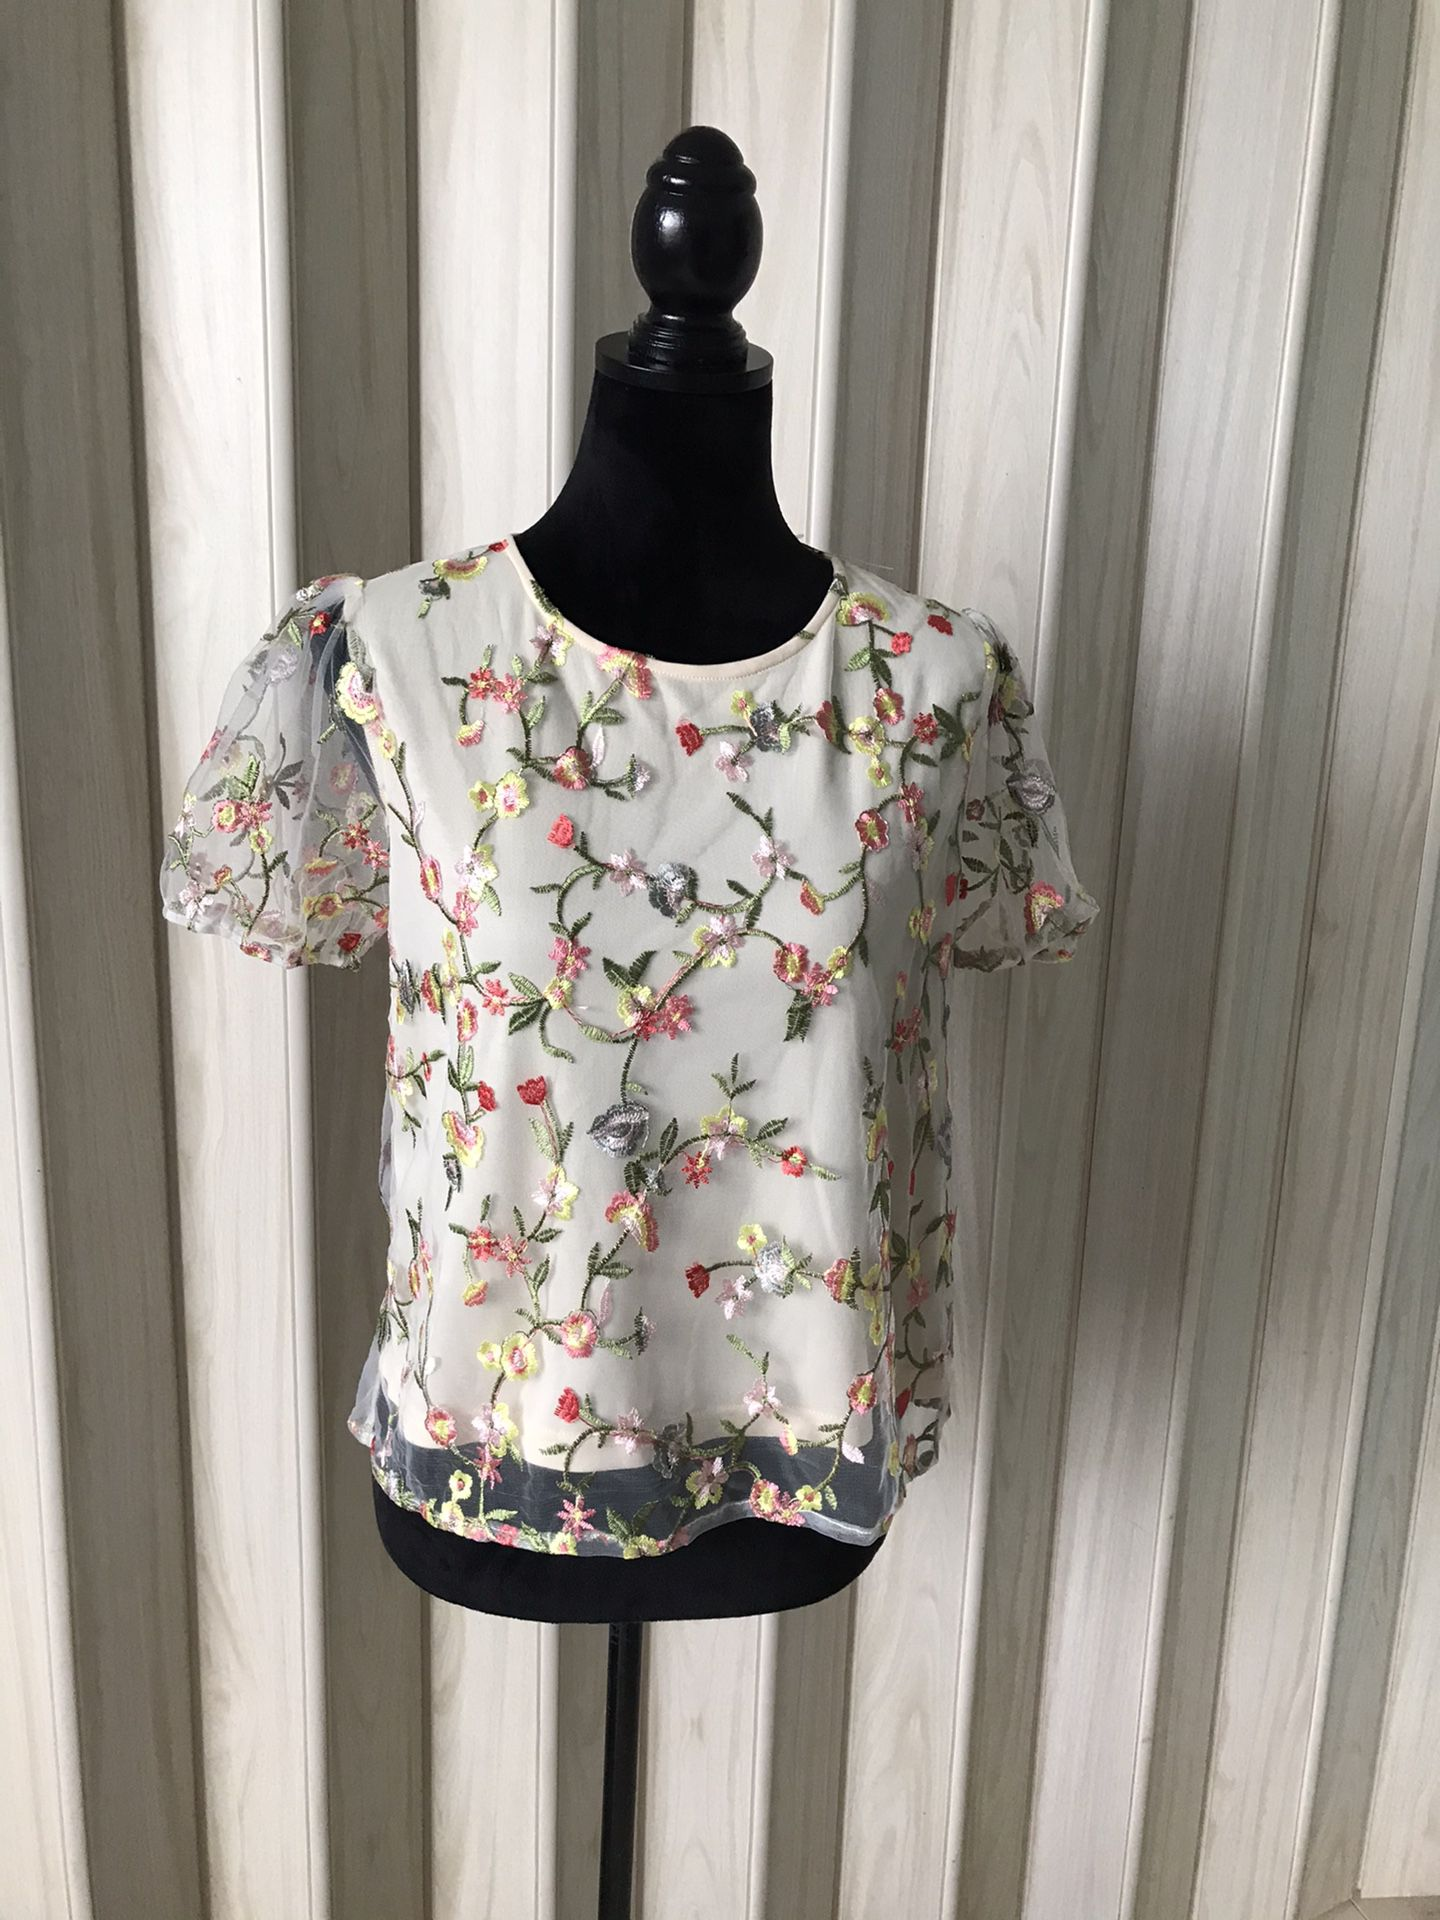 THE CLOTHING COMPANY BLOUSE SIZE M